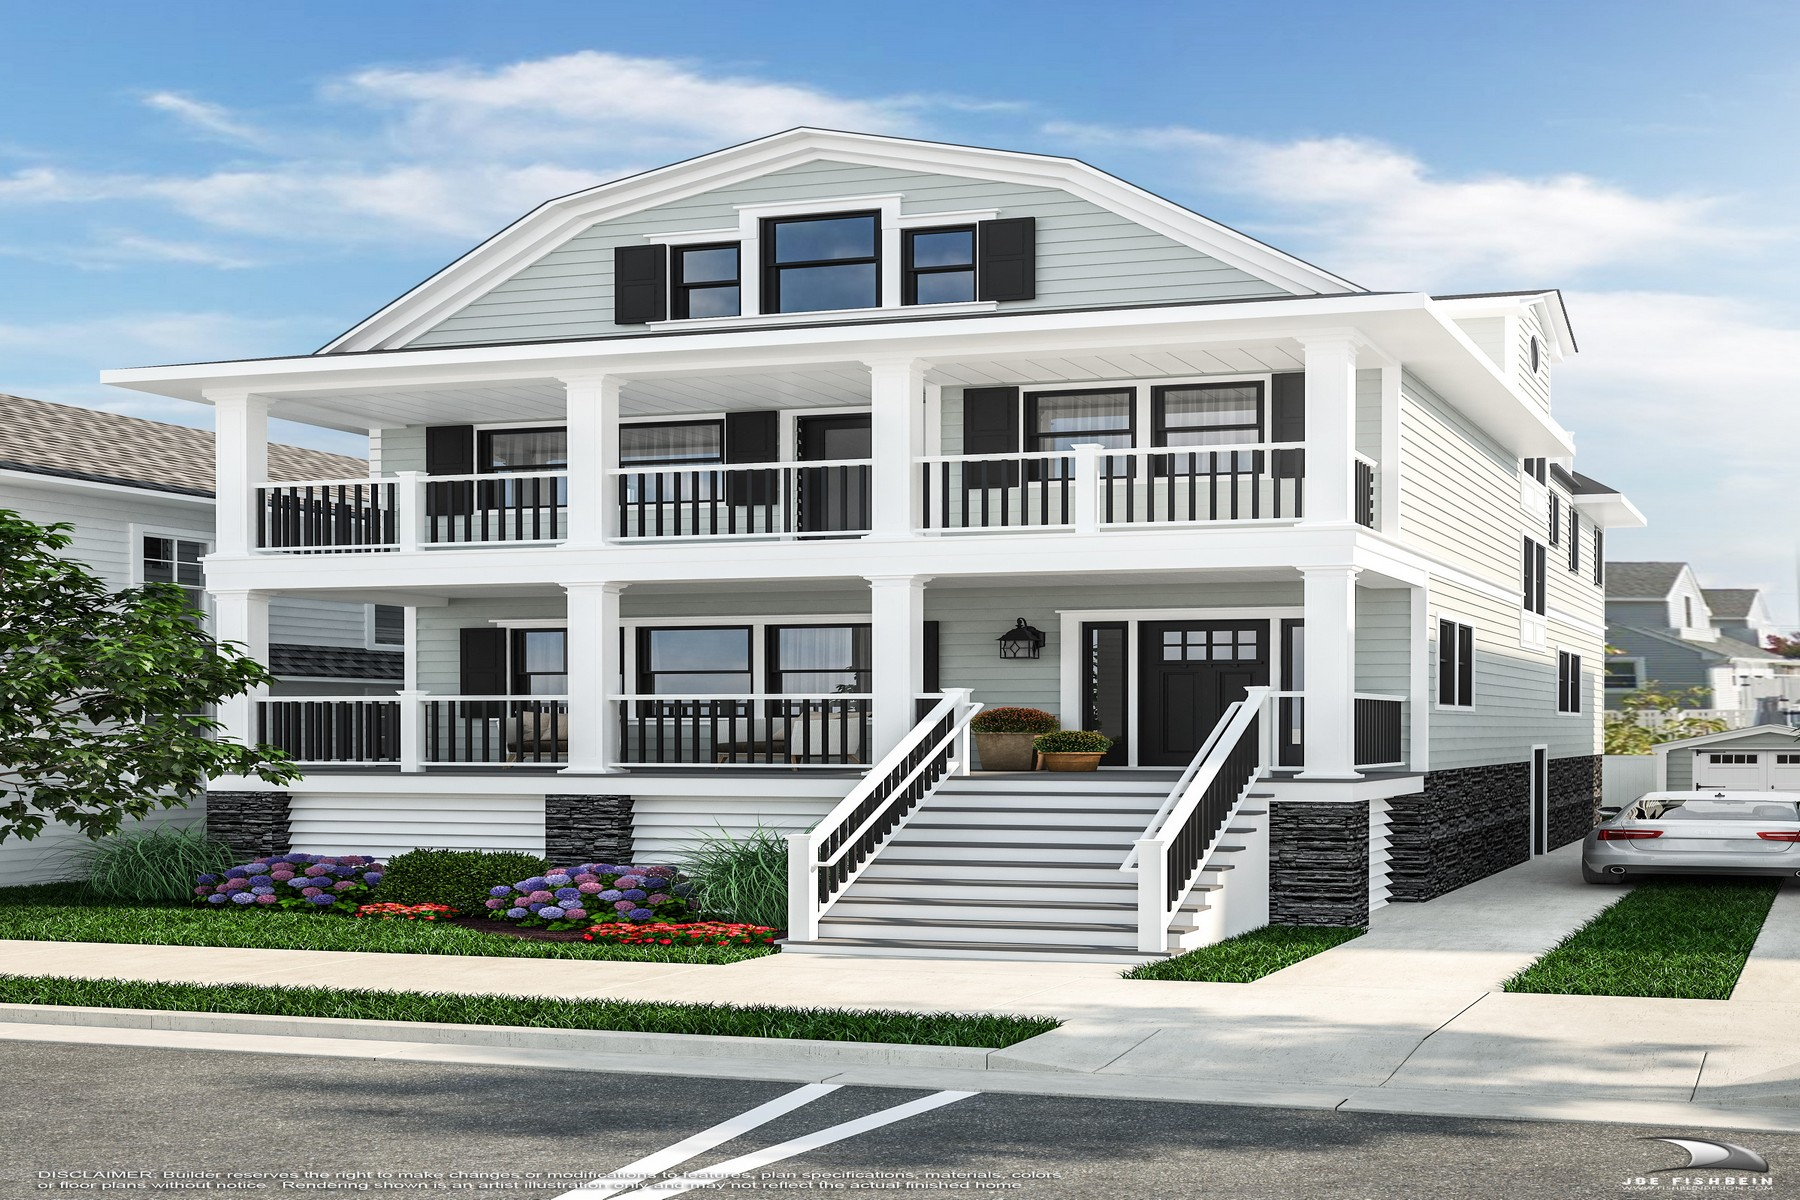 Single Family Home for Sale at 15 N Granvillle 15 N Granville Ave, Margate, New Jersey, 08402 United States